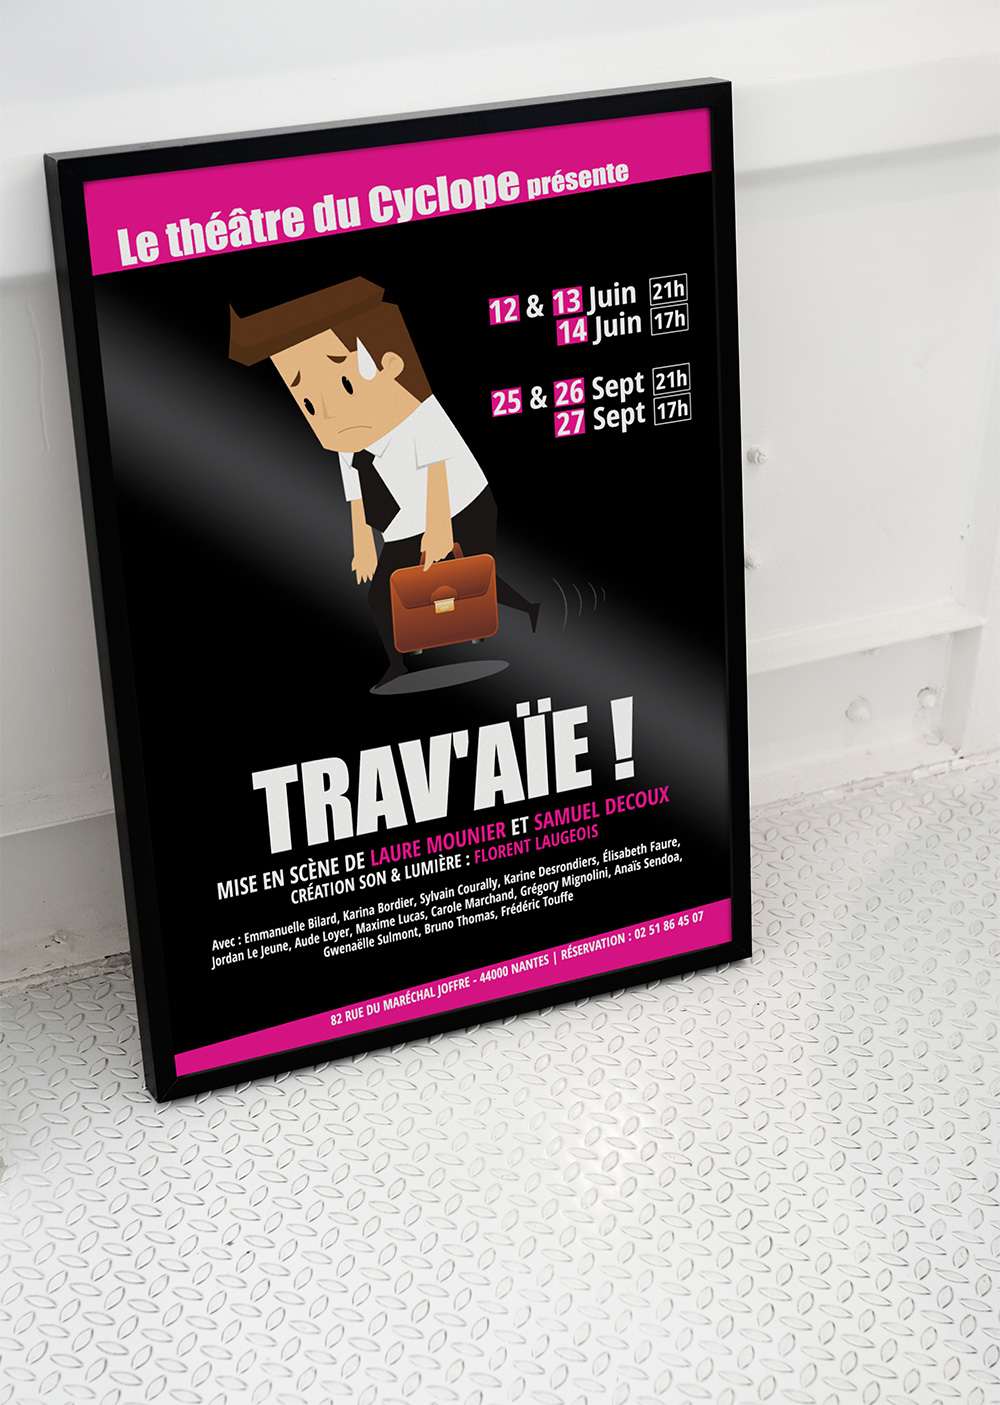 cyclope-theatre-affiche-travaie